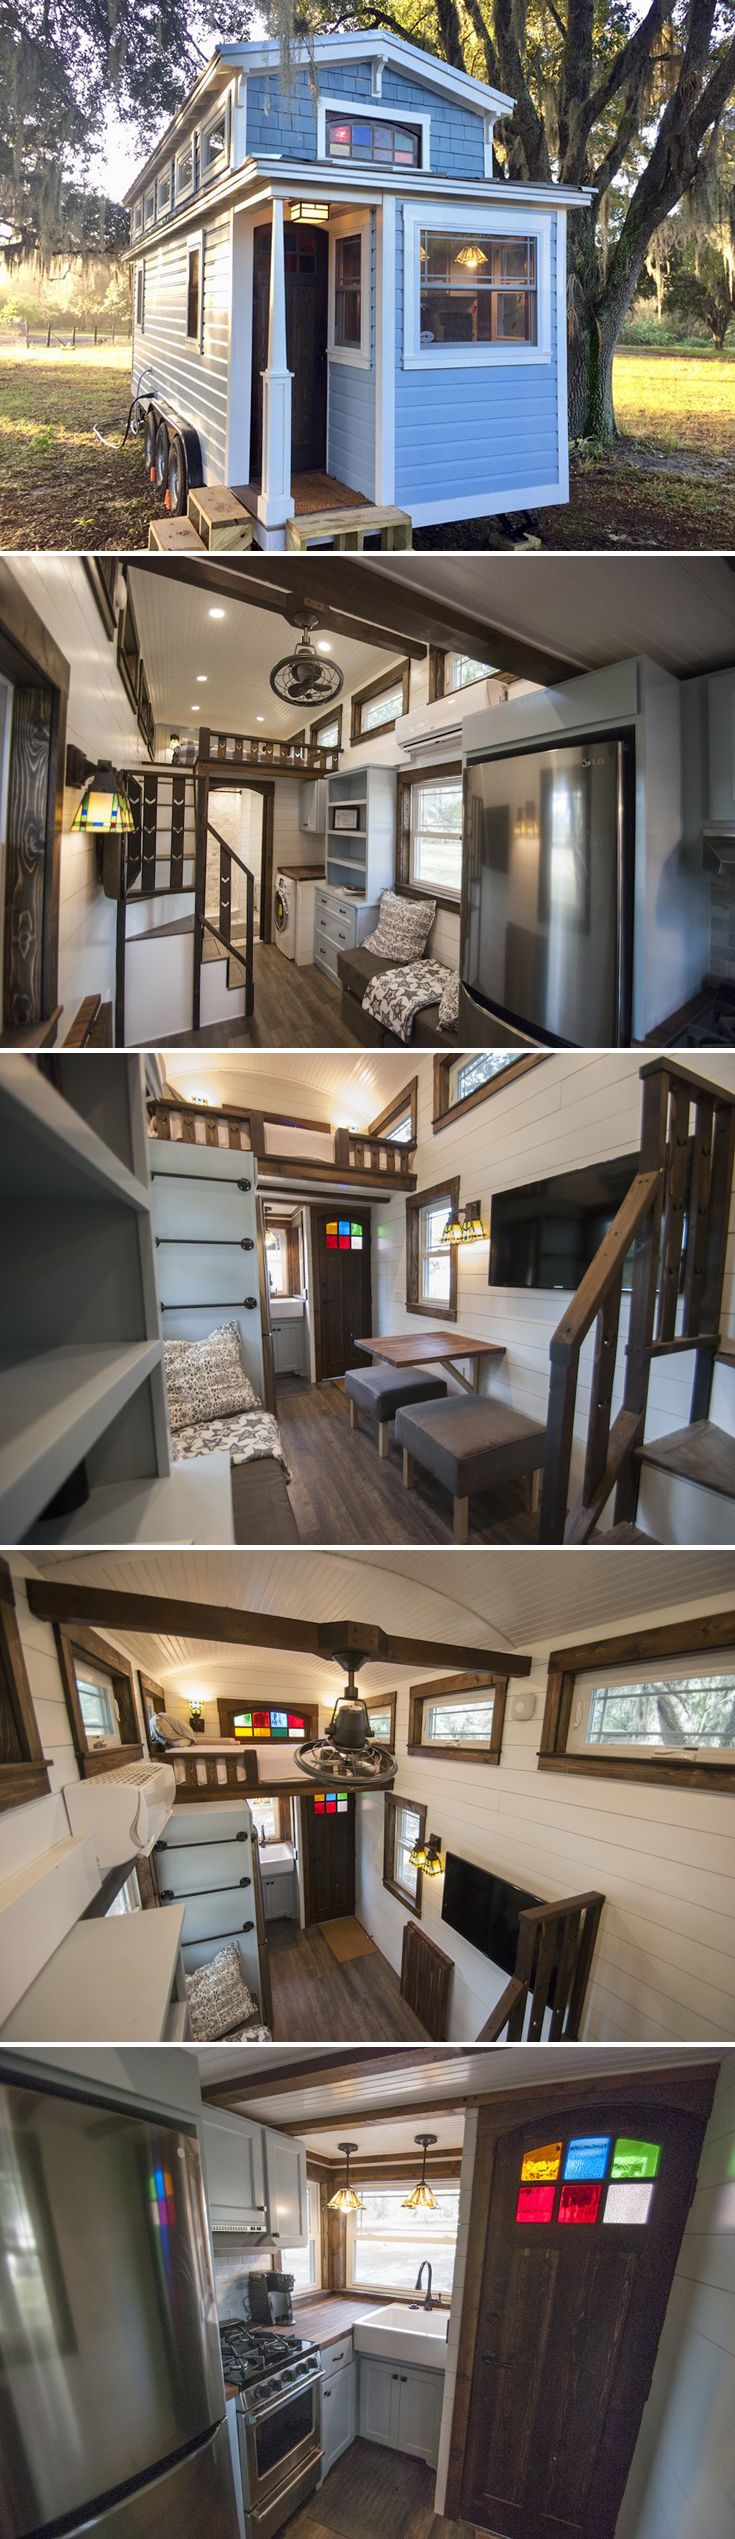 The craftsman style tiny house features a custom